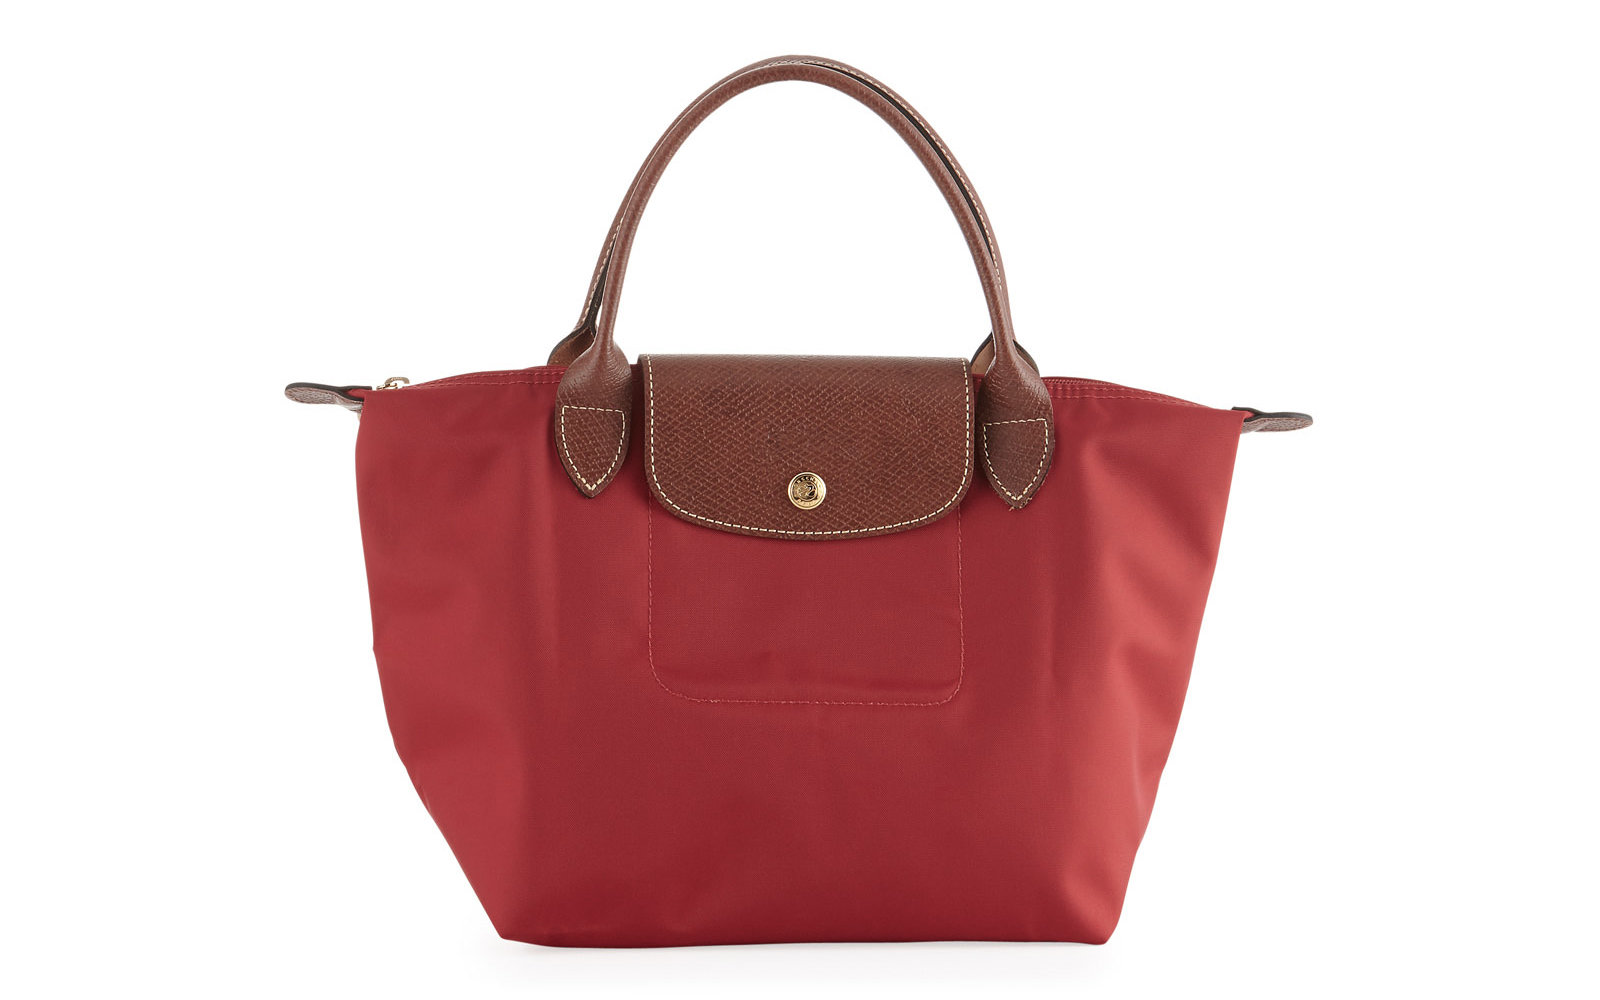 Longchamp Bags On